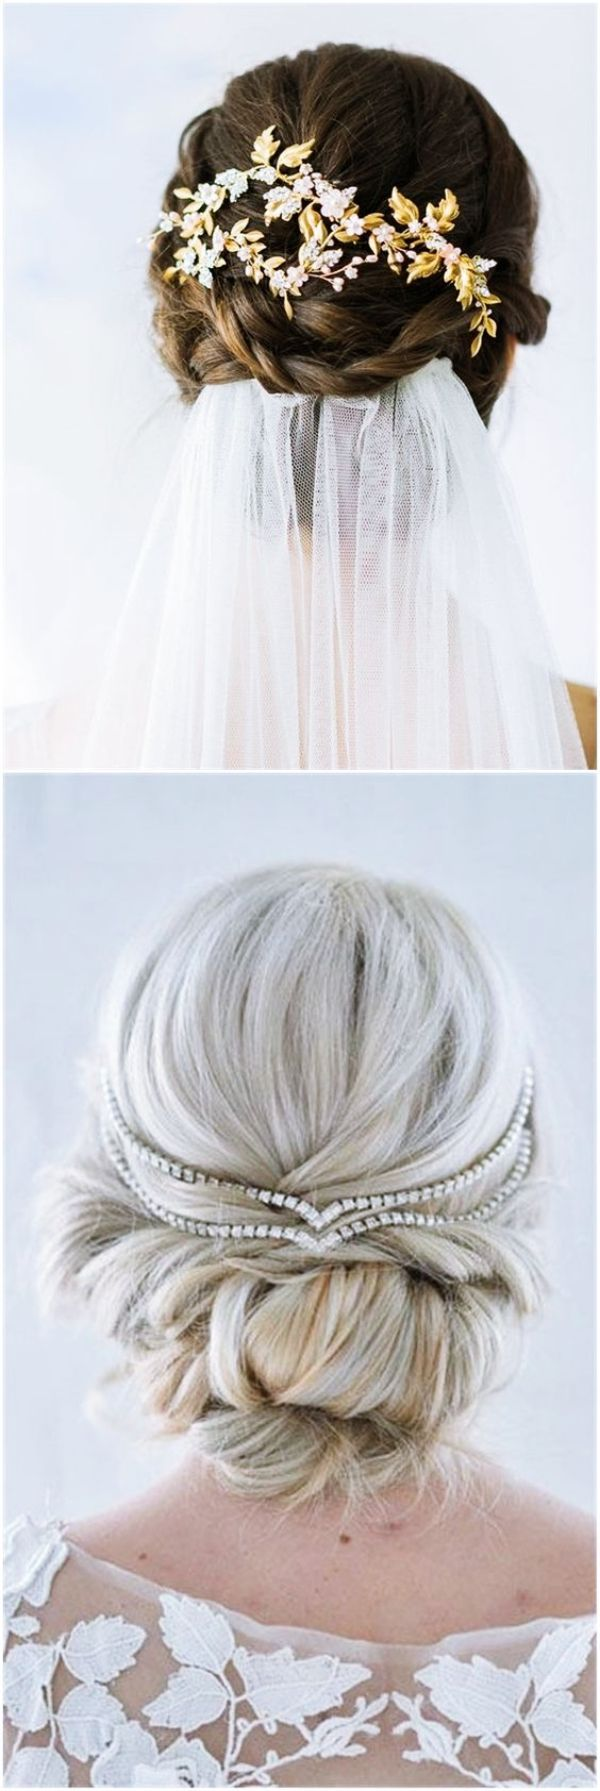 40 Gorgeous Wedding Hairstyles For Long Hair | Wedding, Weddings and ...